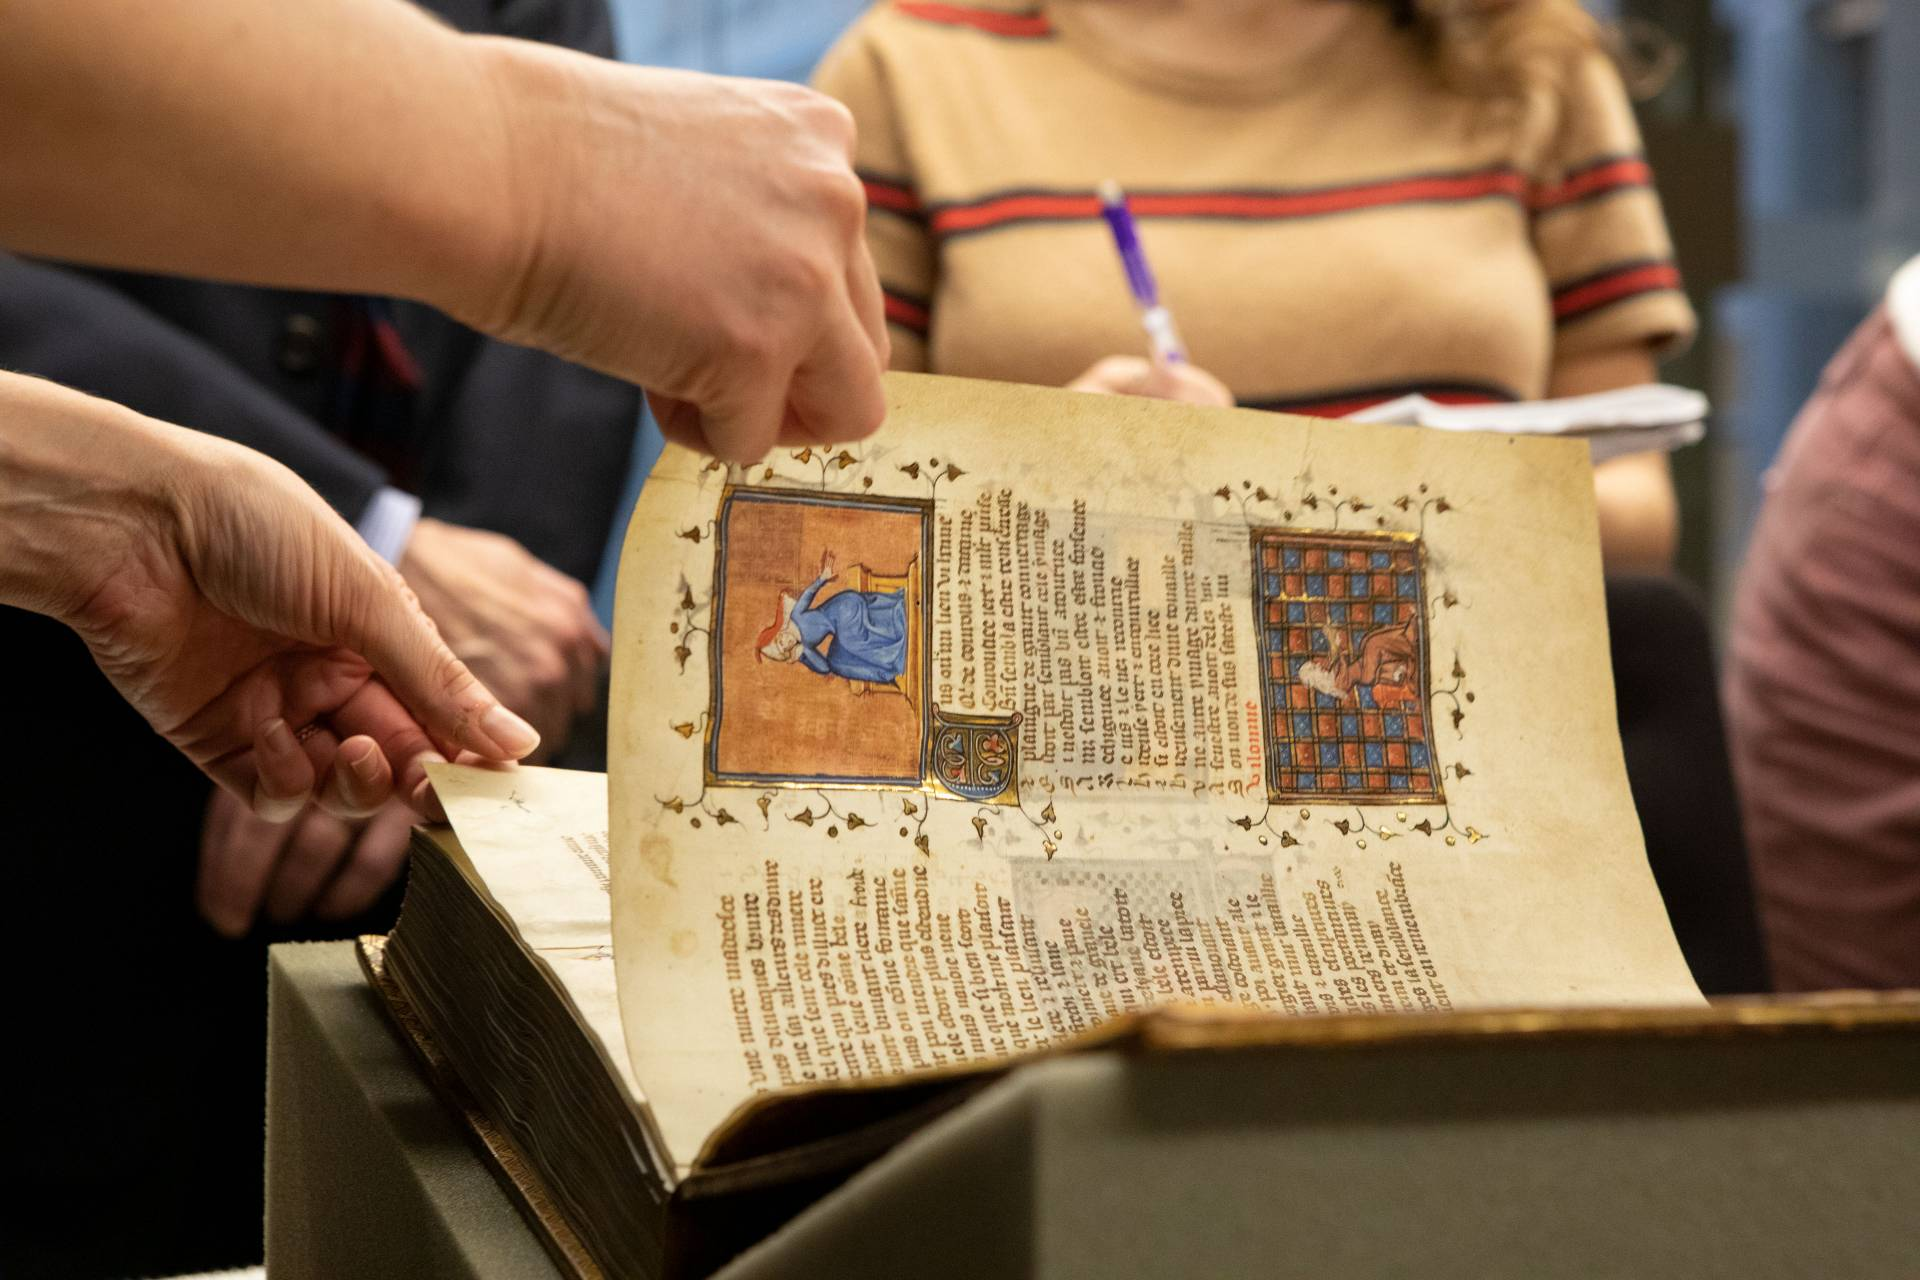 Hand turning page of ancient illuminated manuscript